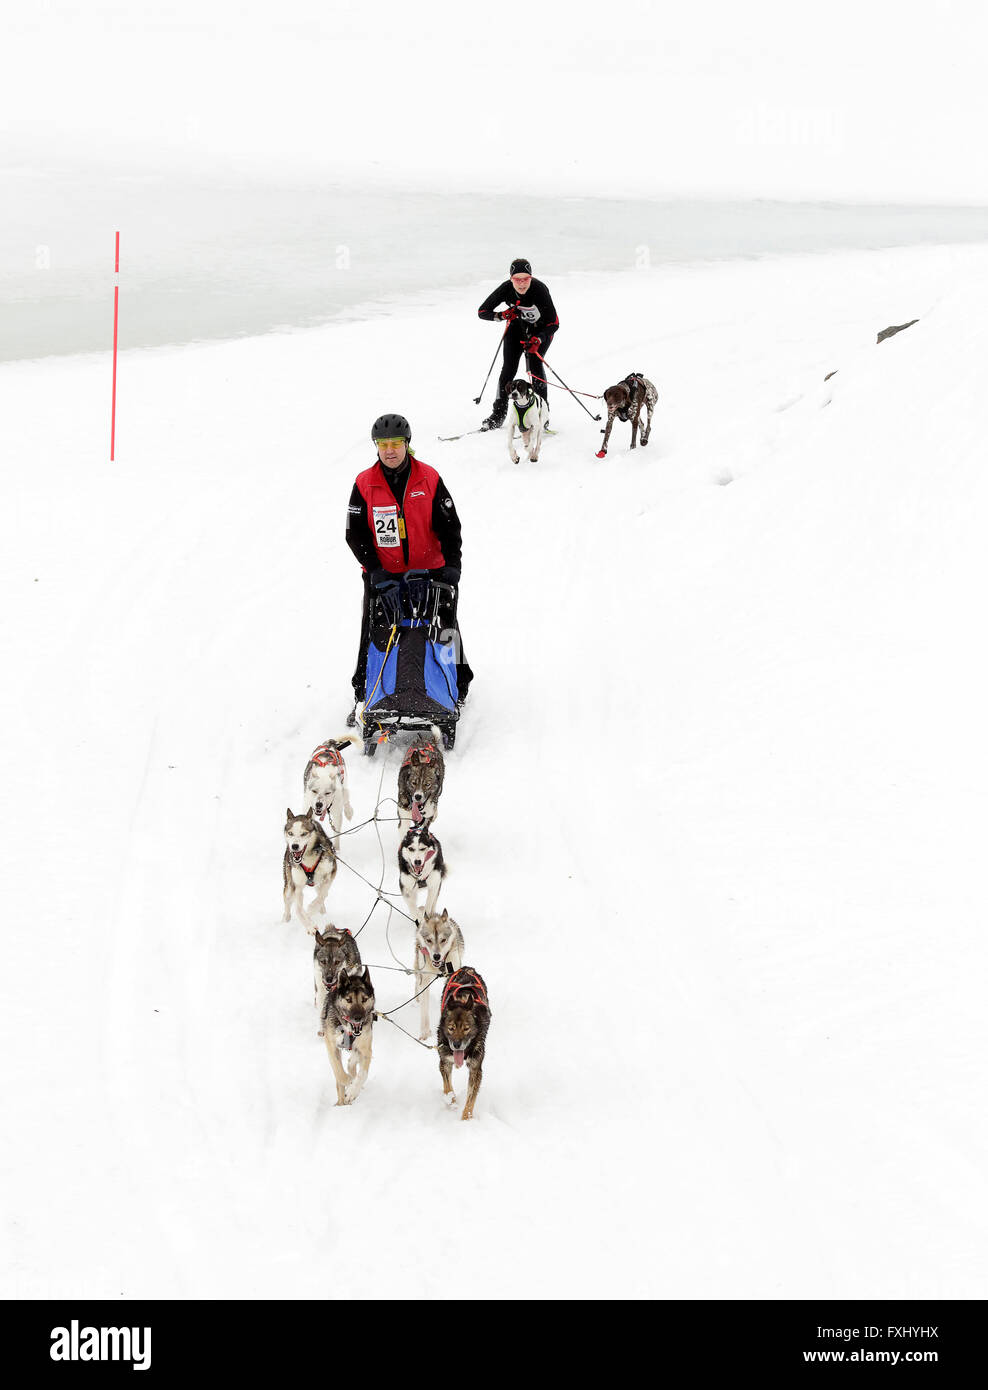 A team of huskies pulling a one-man sledge followed by two dogs and a skier. - Stock Image